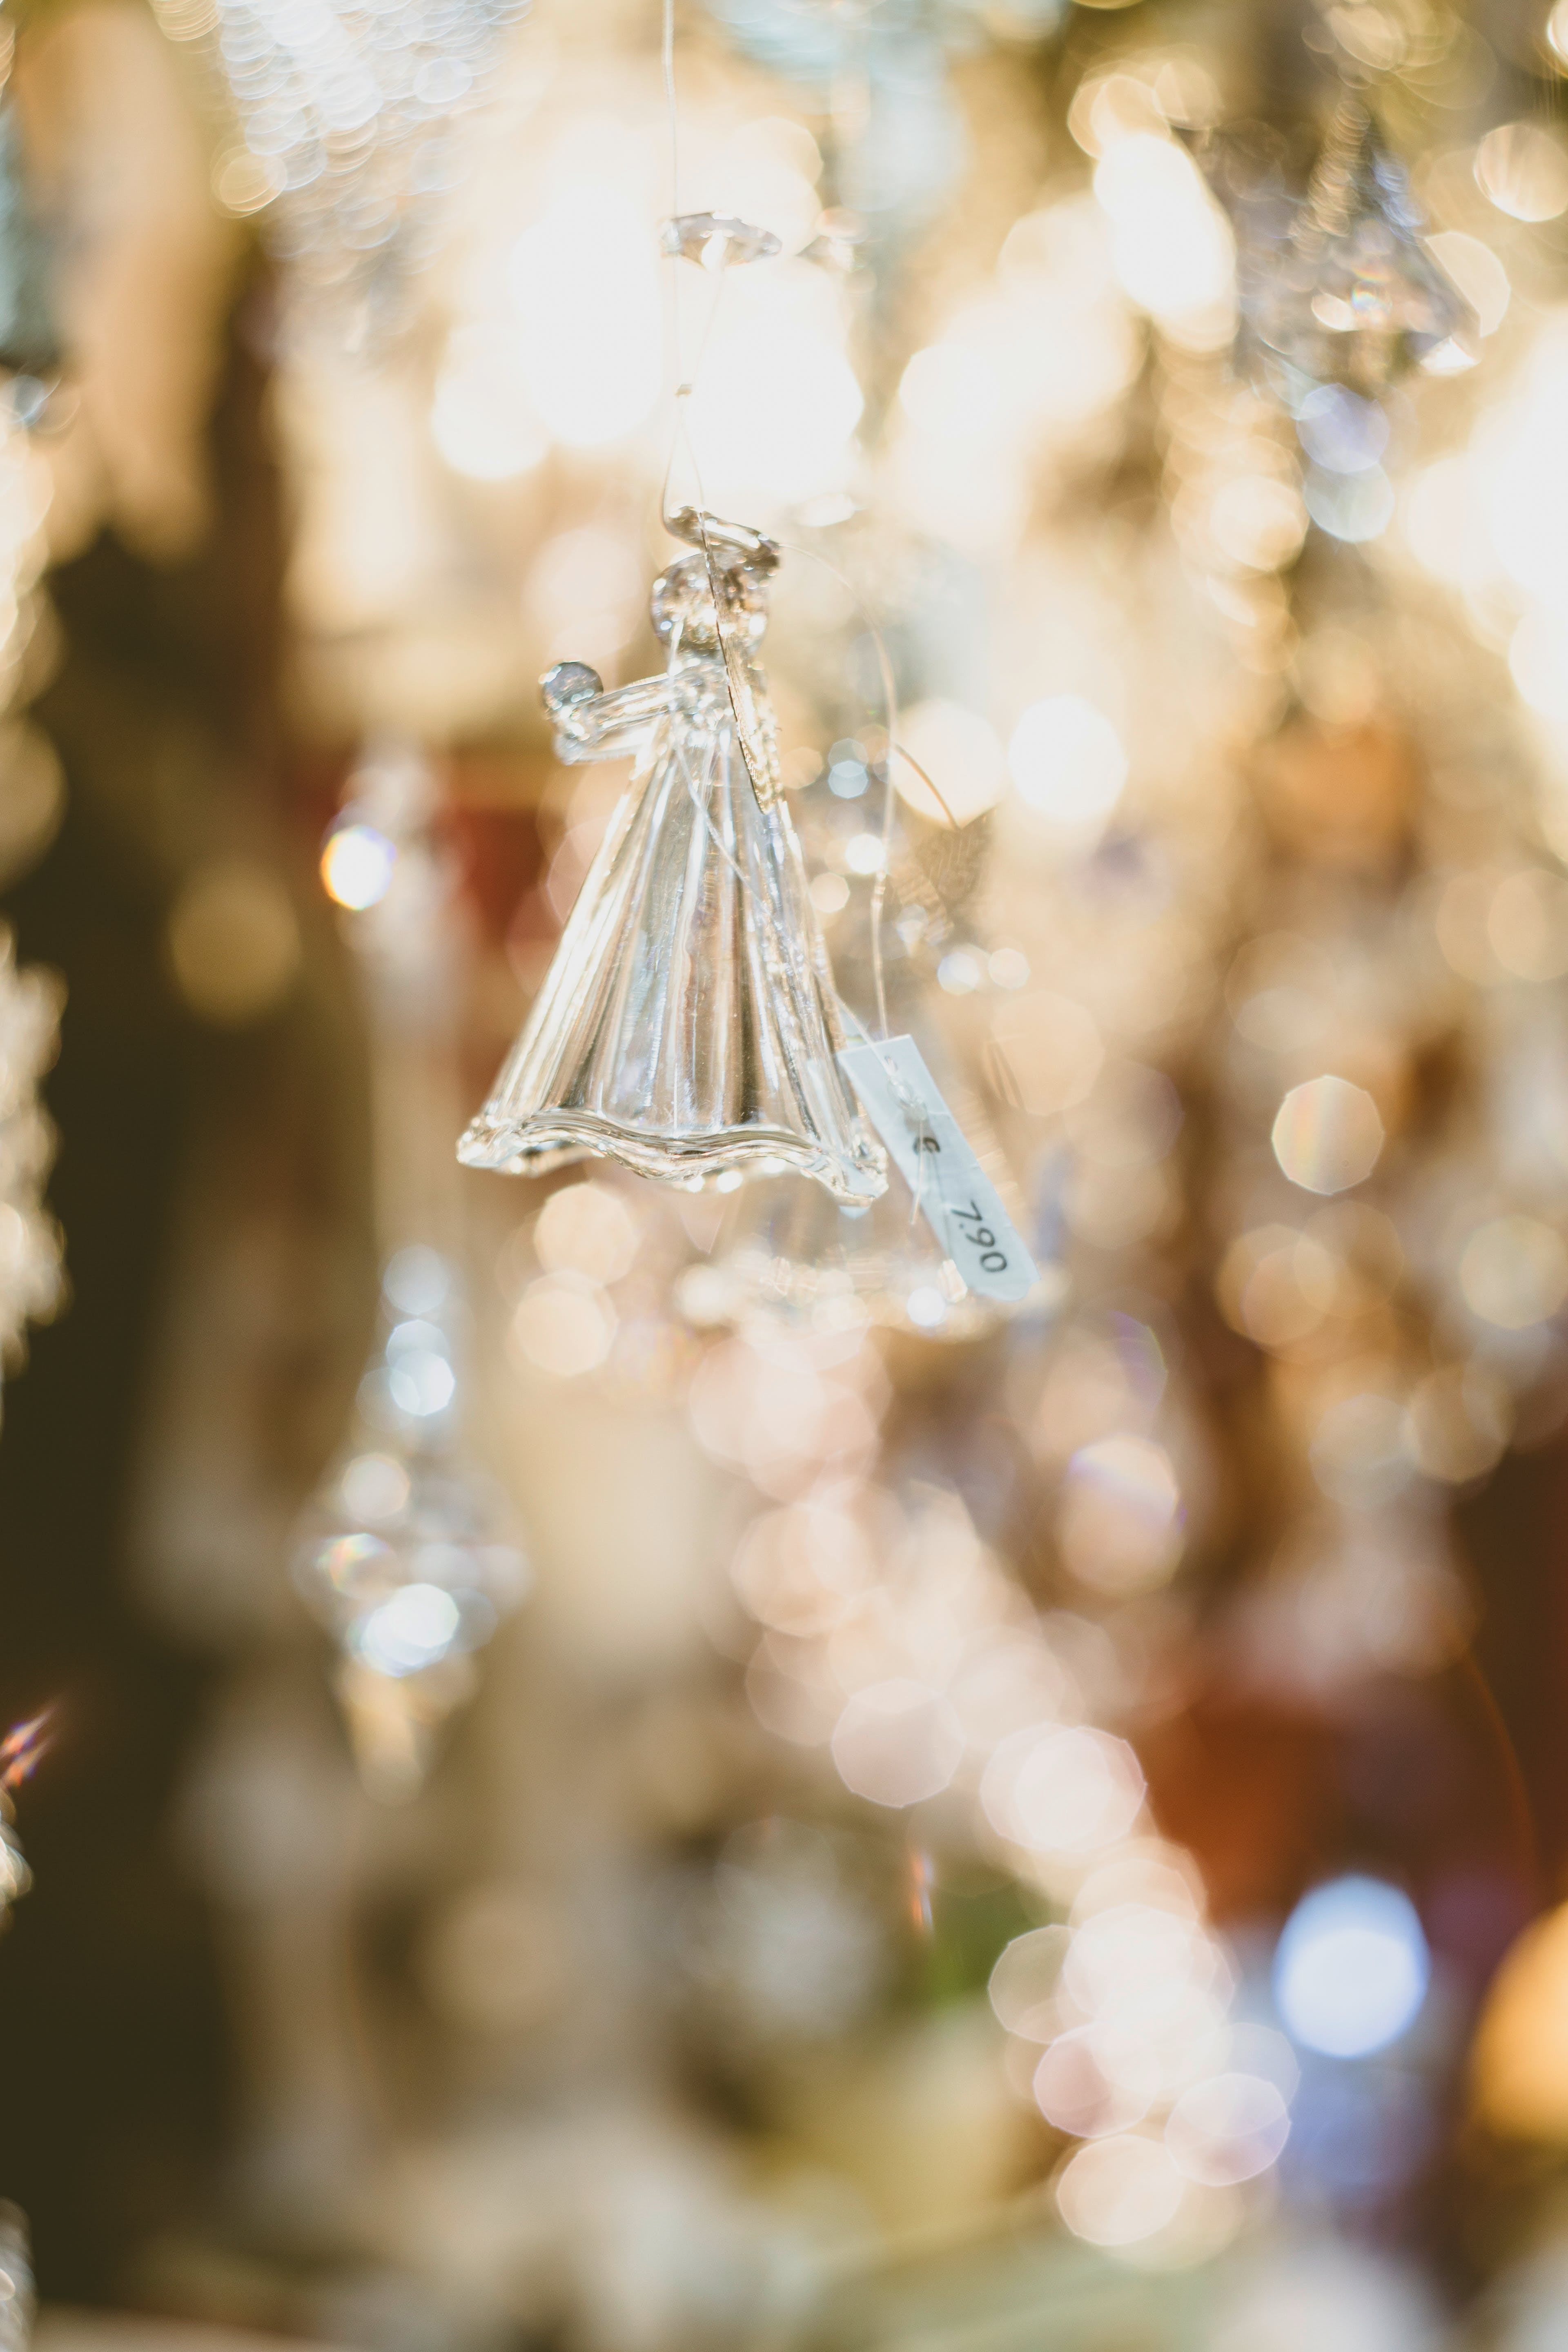 Free stock photo of christmas, christmas bauble, christmas bell, christmas gift